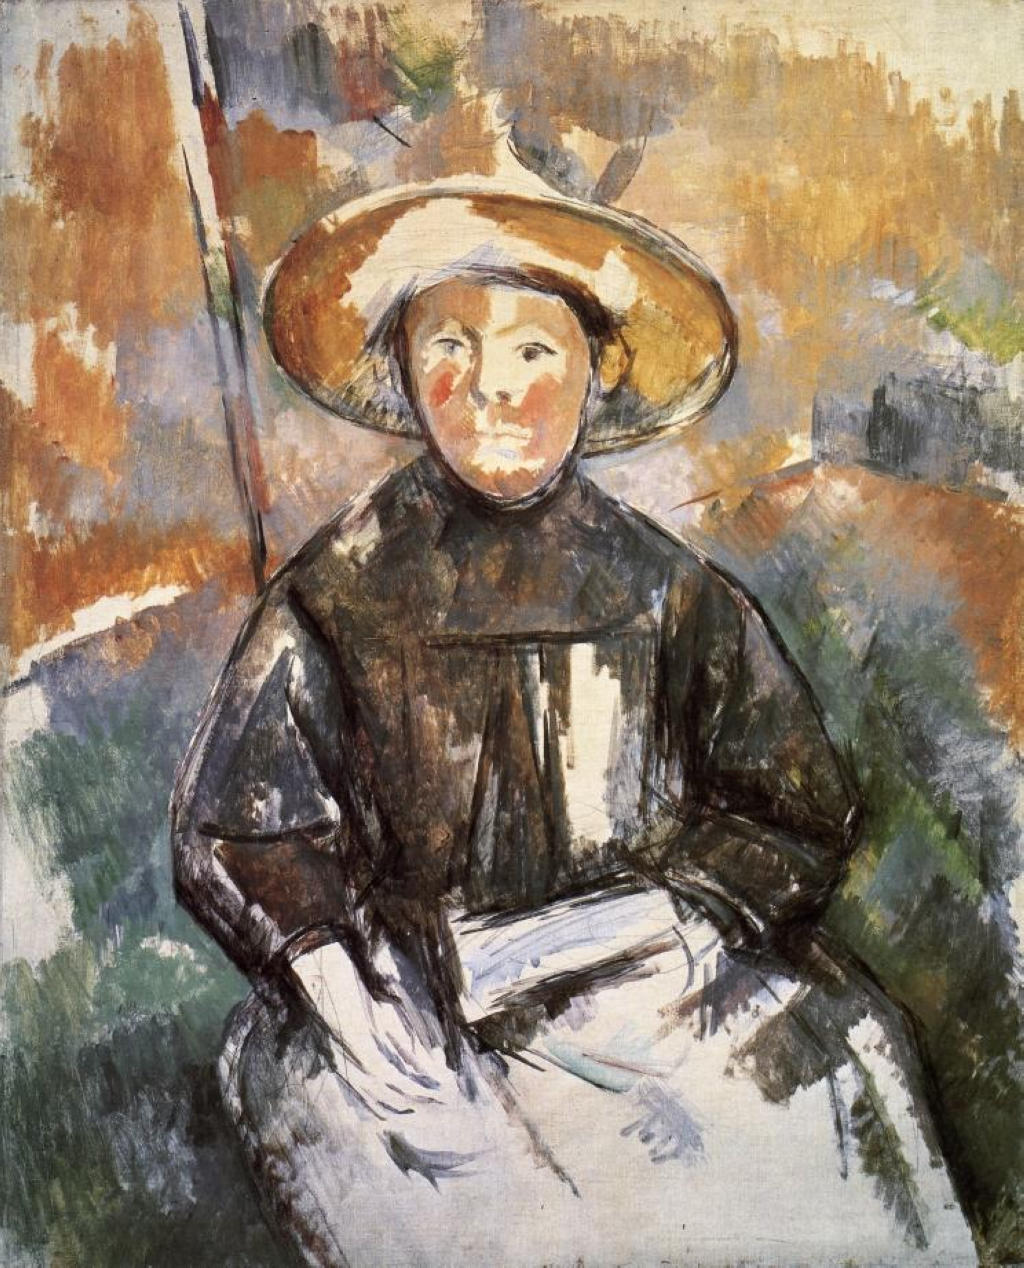 https://uploads8.wikiart.org/images/paul-cezanne/child-in-a-straw-hat-1902.jpg